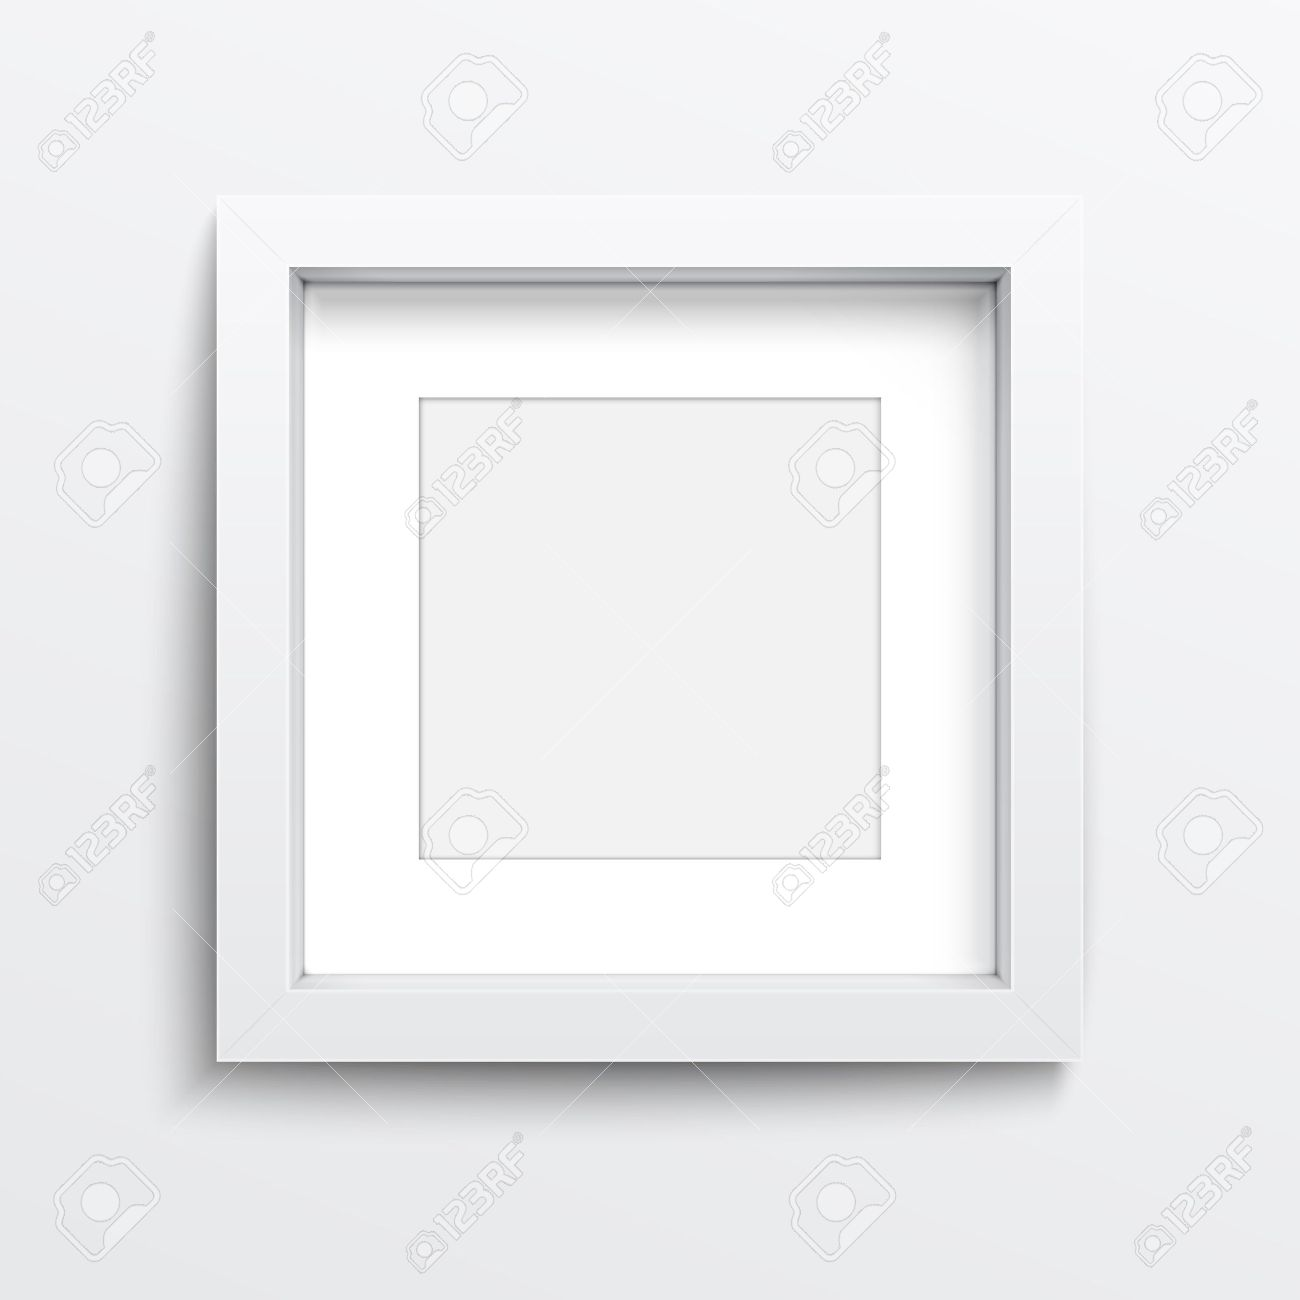 White Square Frame On Gray Wall With Realistic Shadows. Vector ...